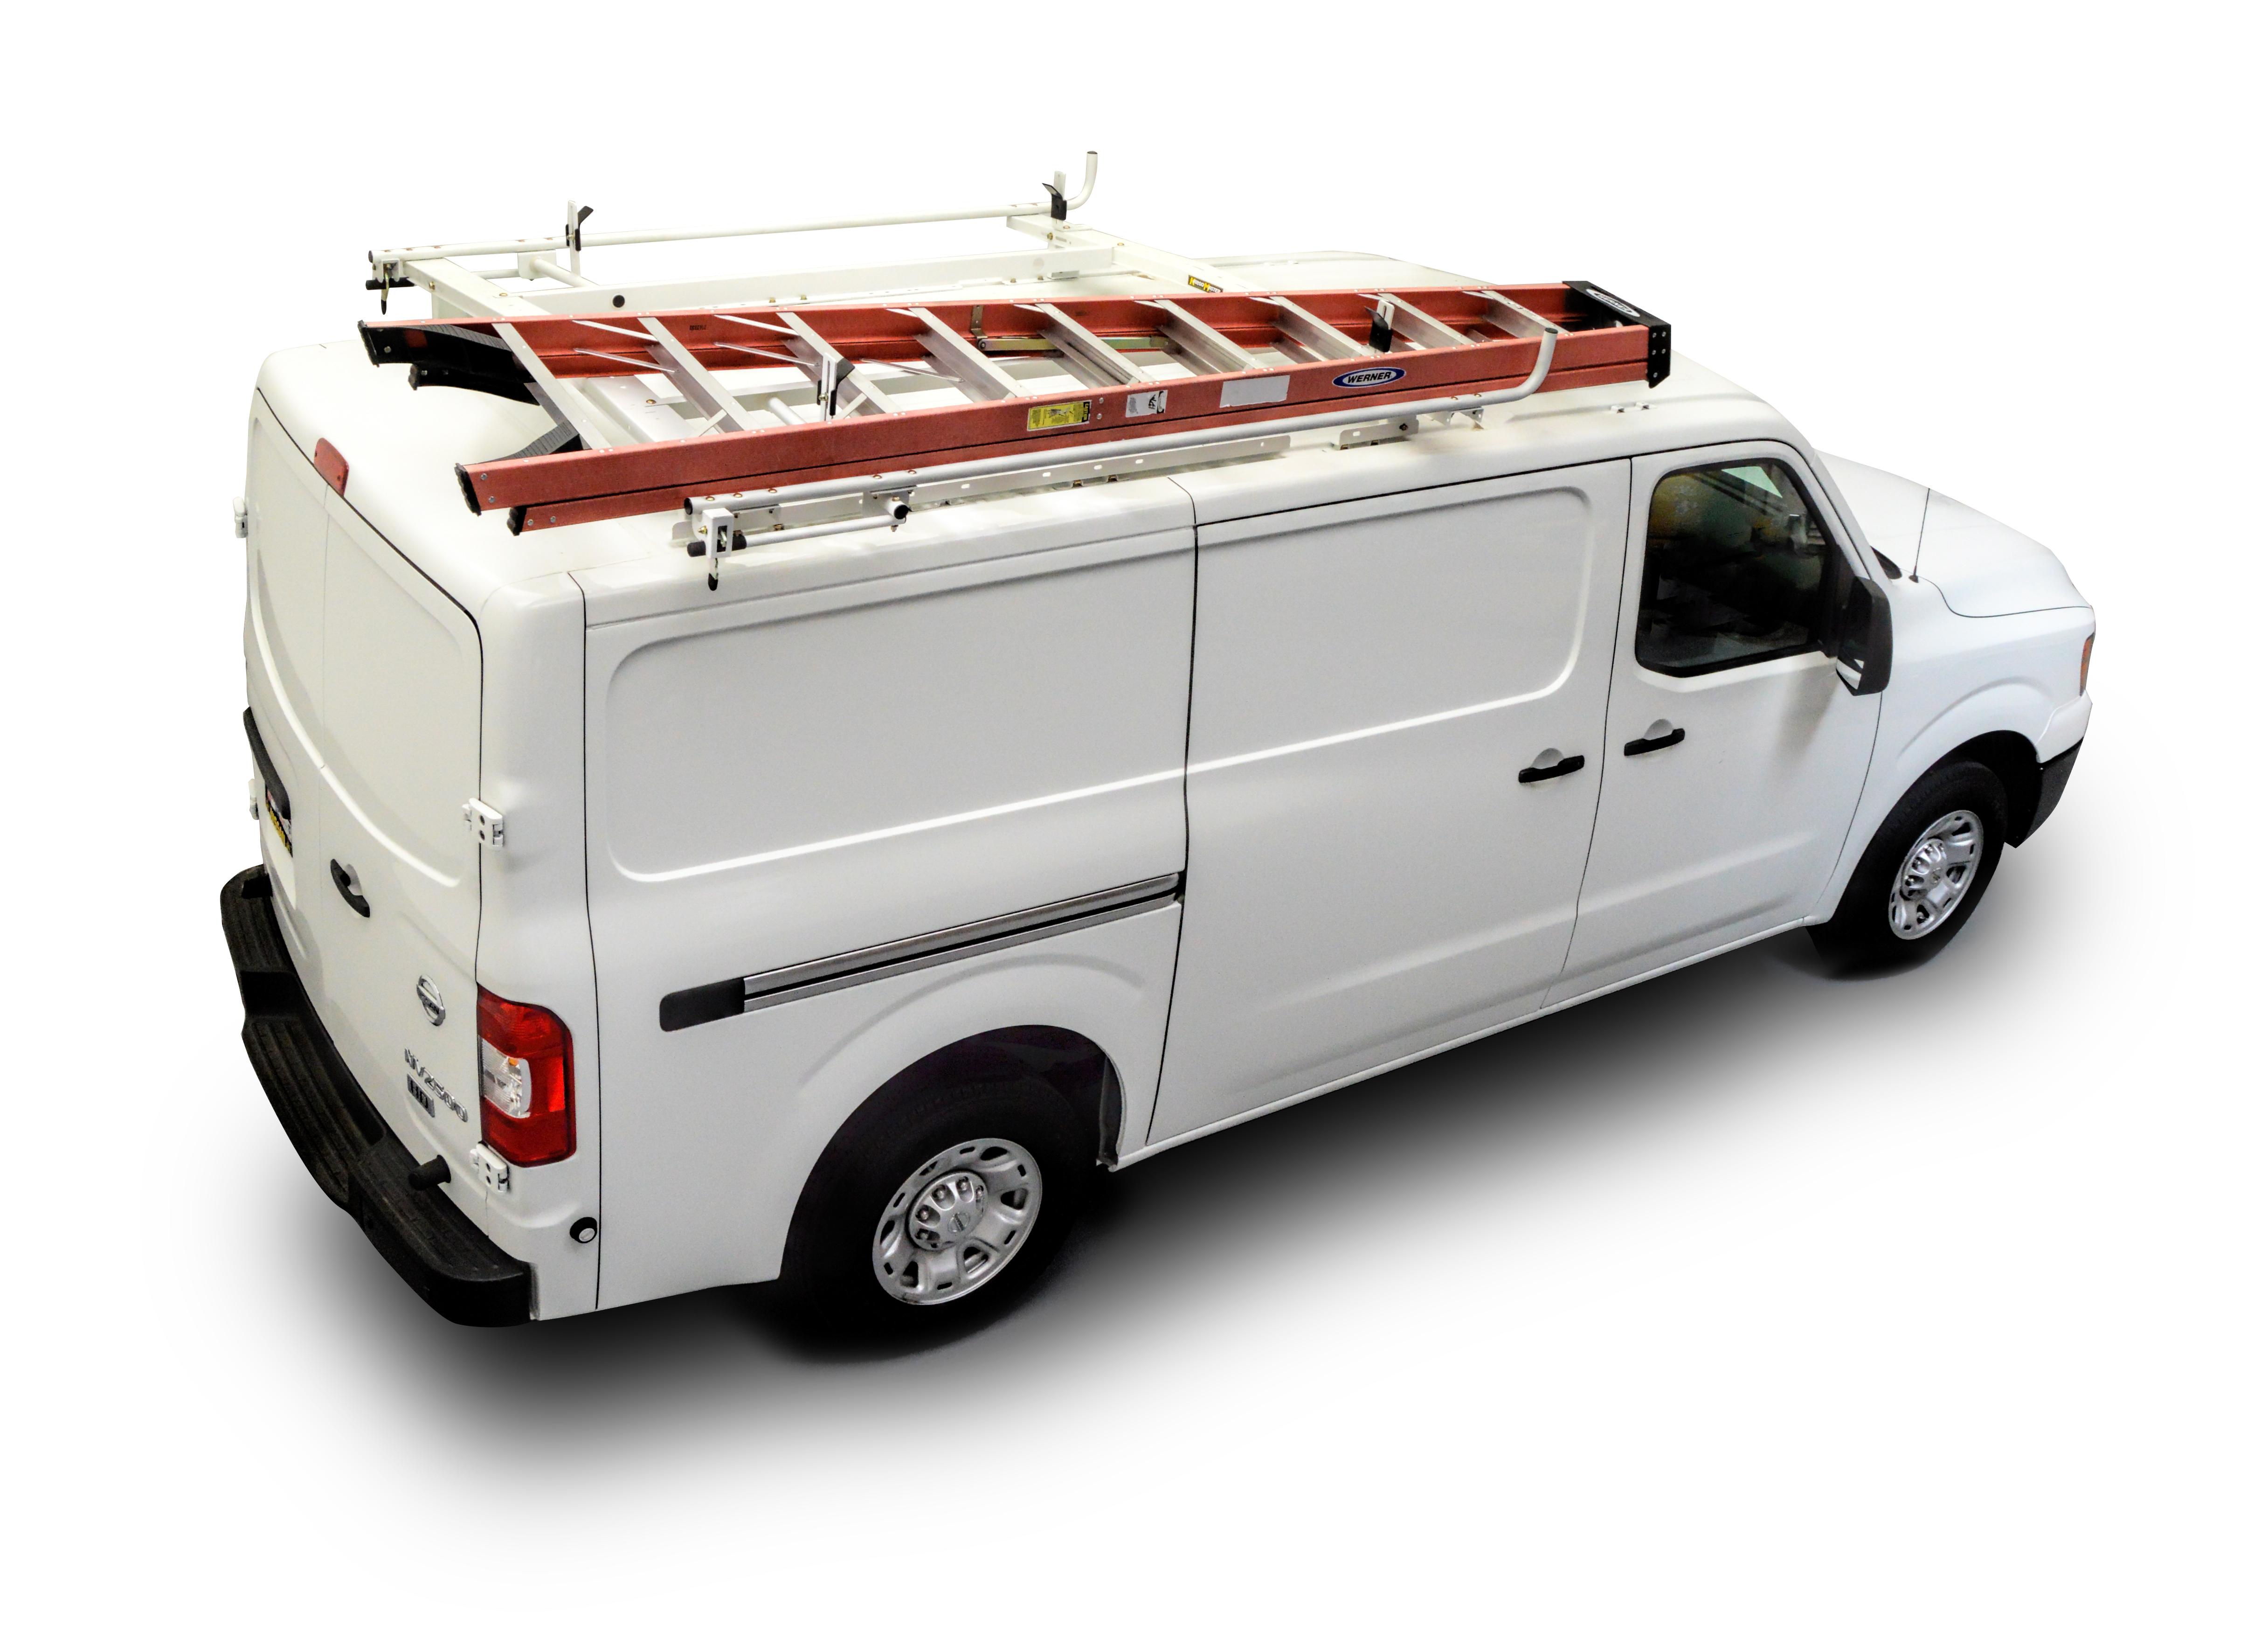 Clamp Lock Ladder Rack For Metric And Low Roof Ford Transitnissan Nv